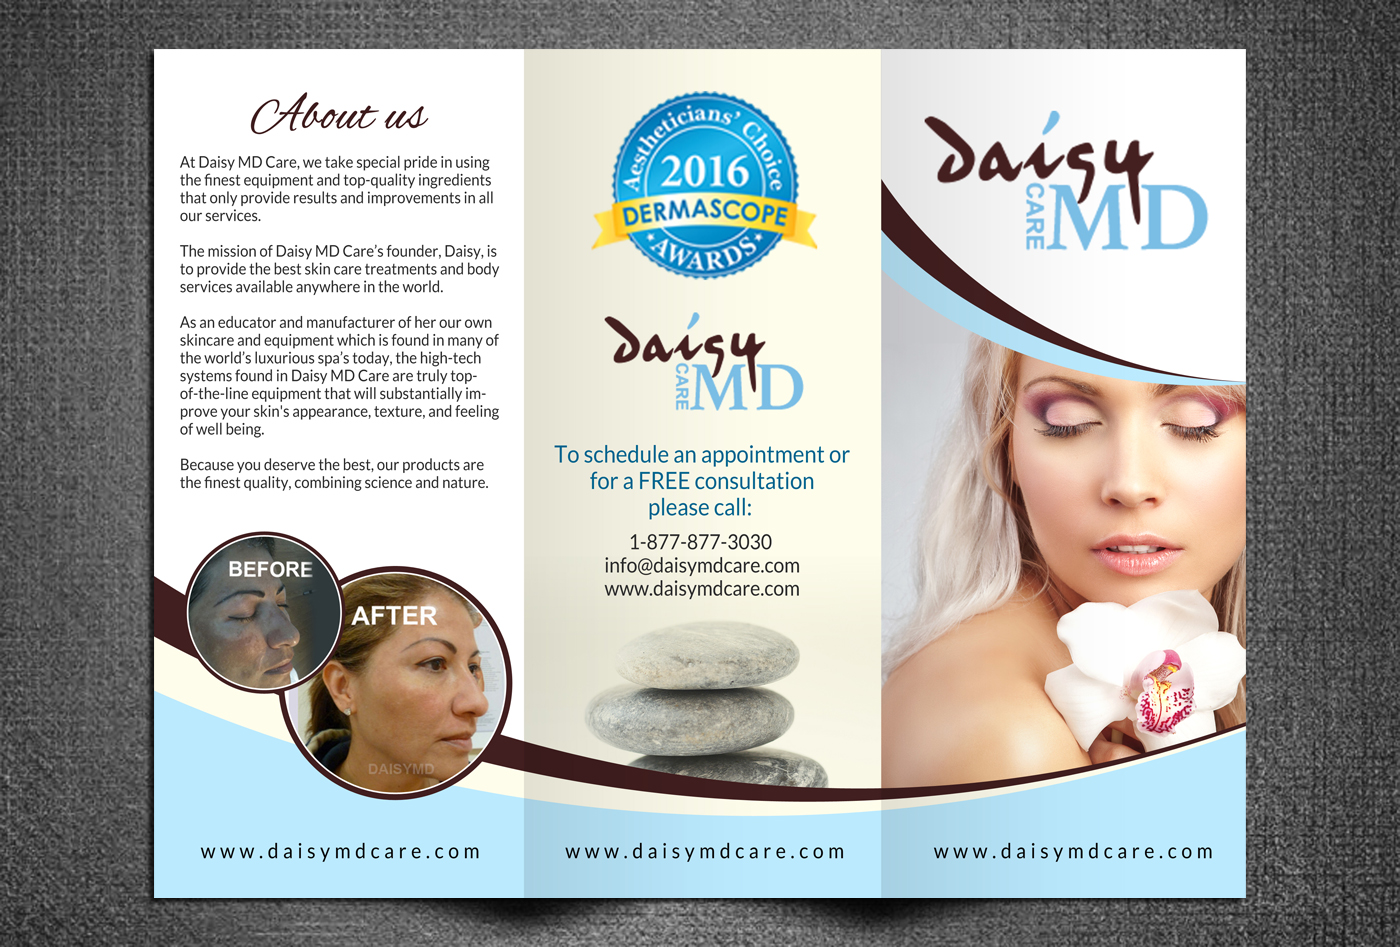 Serious Modern Skin Care Product Brochure Design For Daisy Md Care By Creative Bugs Design 10768668